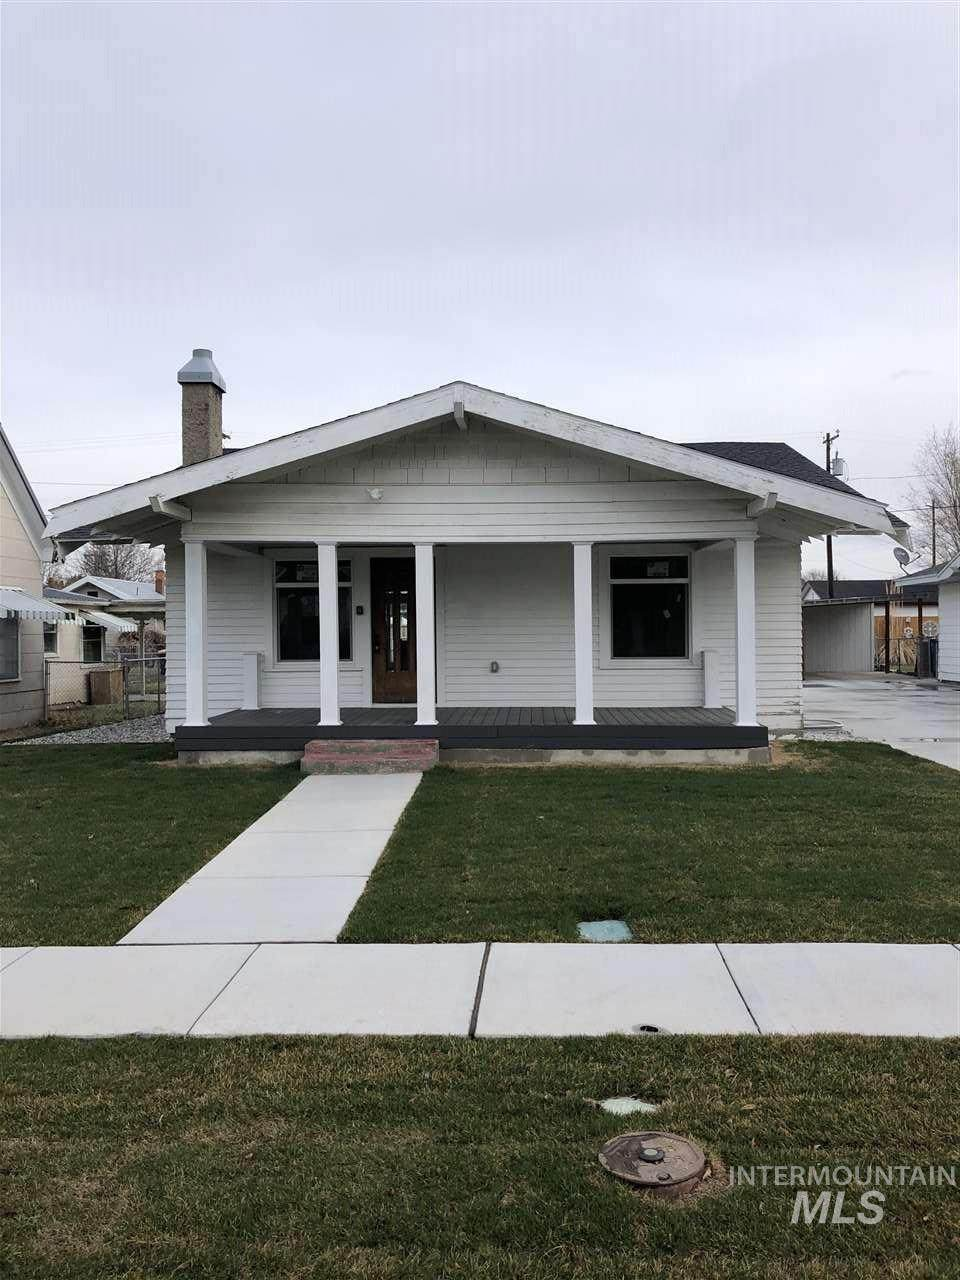 419 6th Ave E - Photo 1